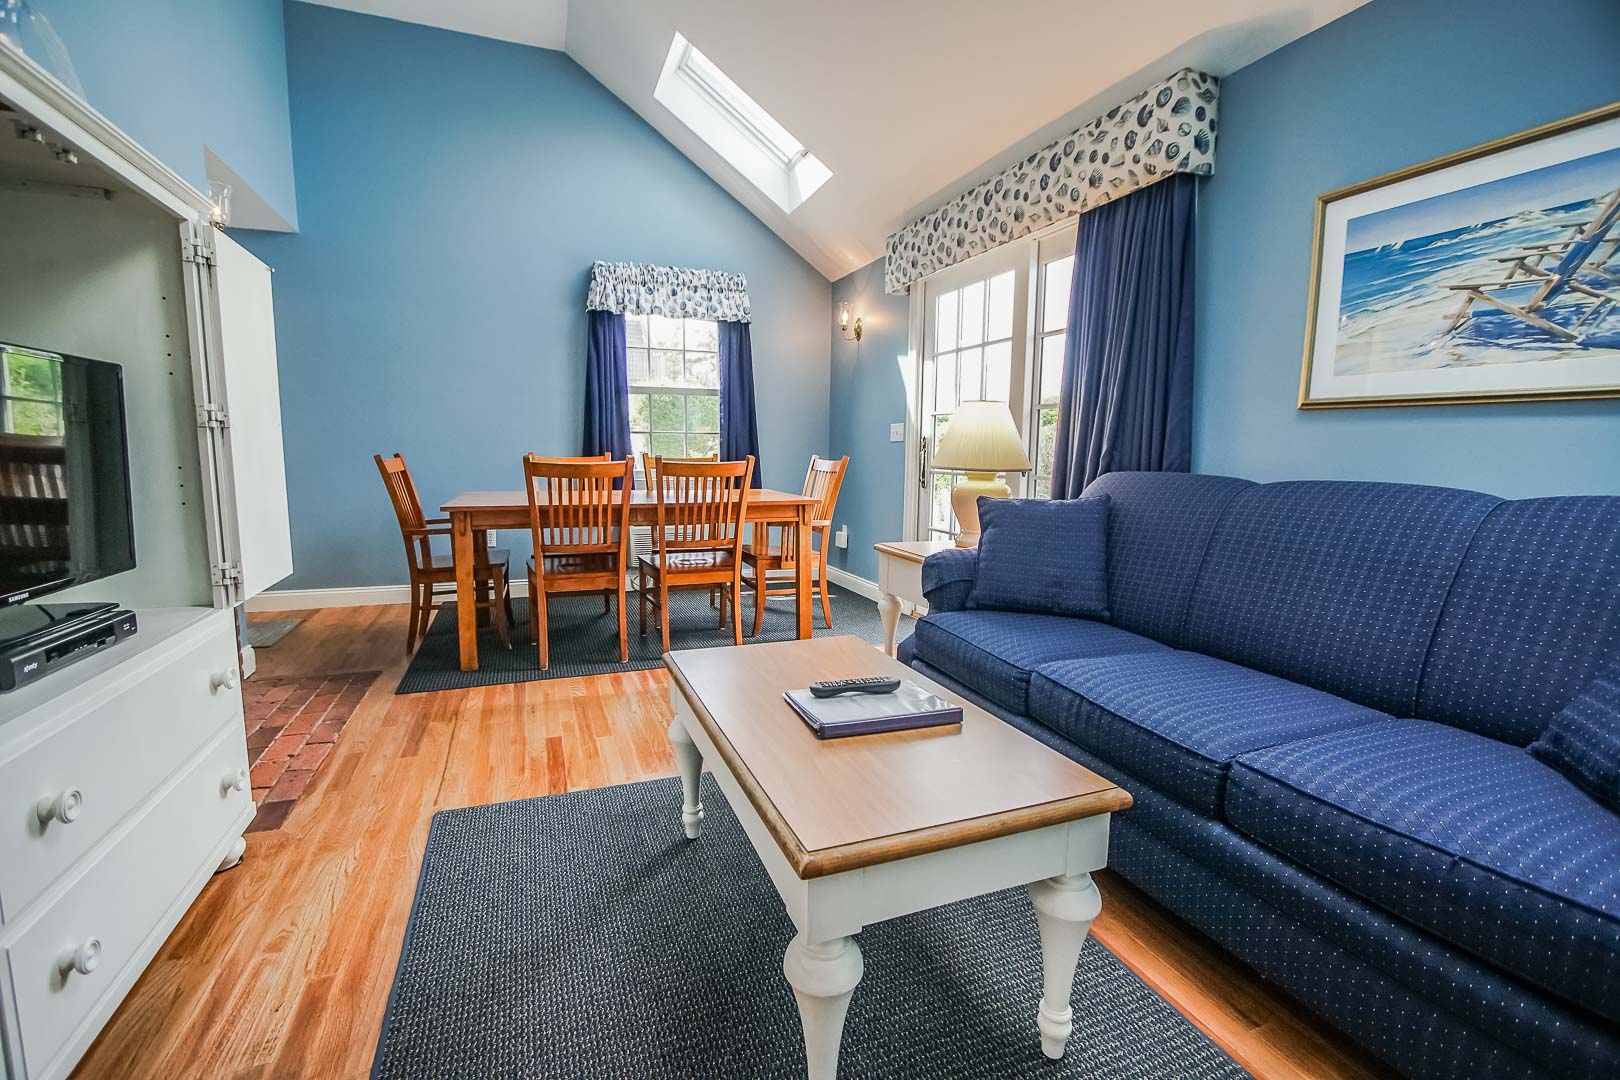 A spacious living room area at VRI's Beachside Village Resort in Massachusetts.